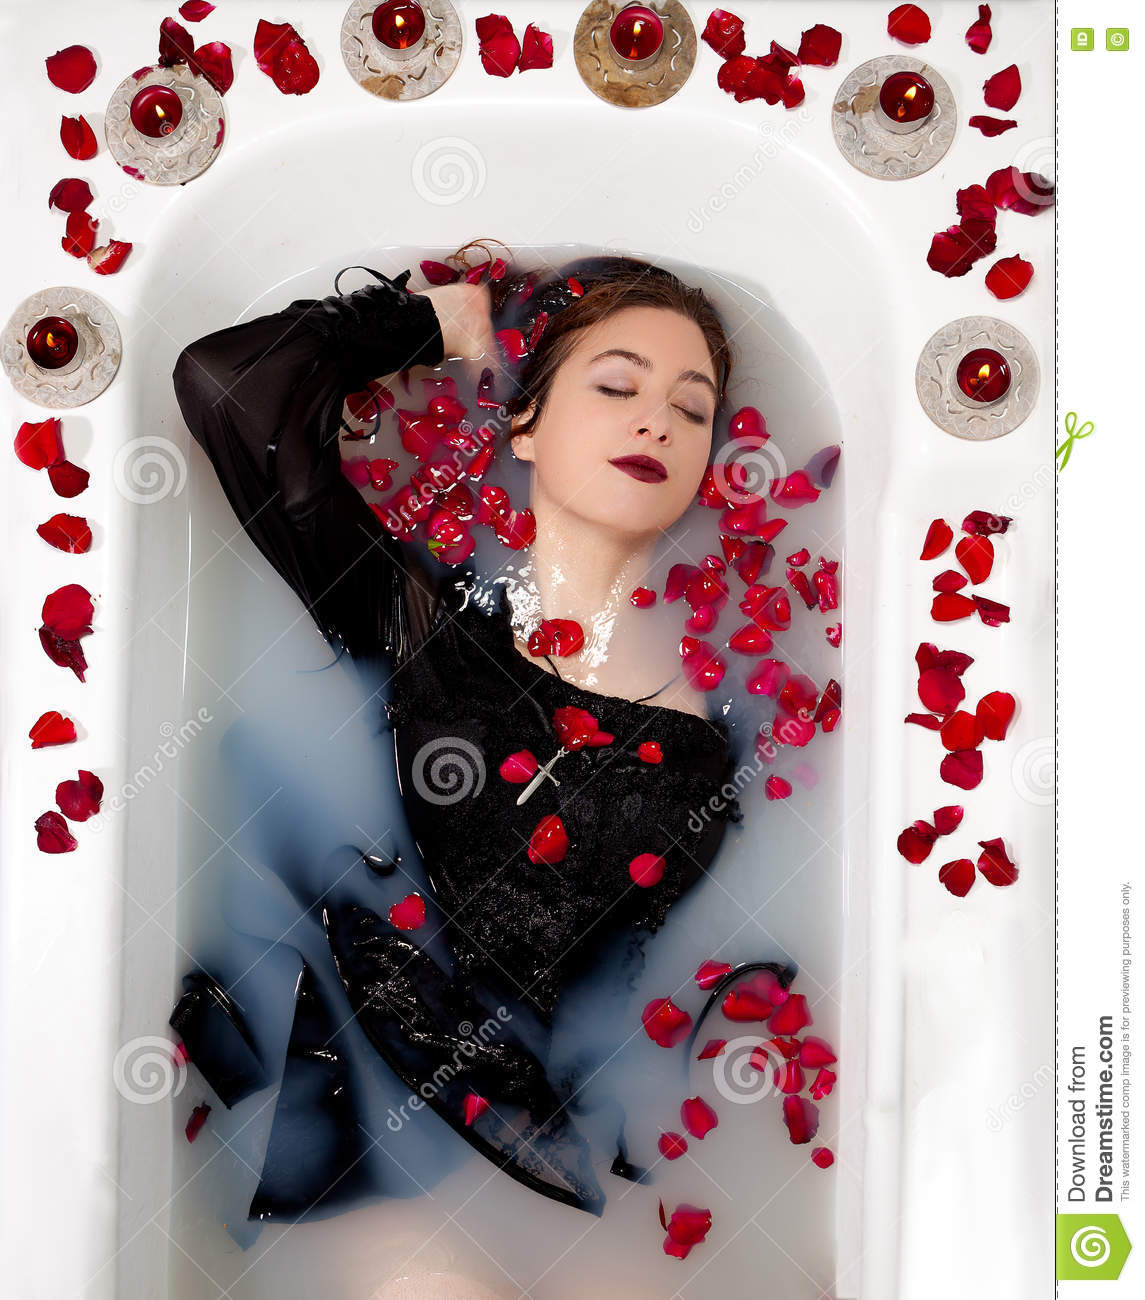 88c659bf286 Girl Milk Water Bath Red Roses Candles Stock Image - Image of gothic ...